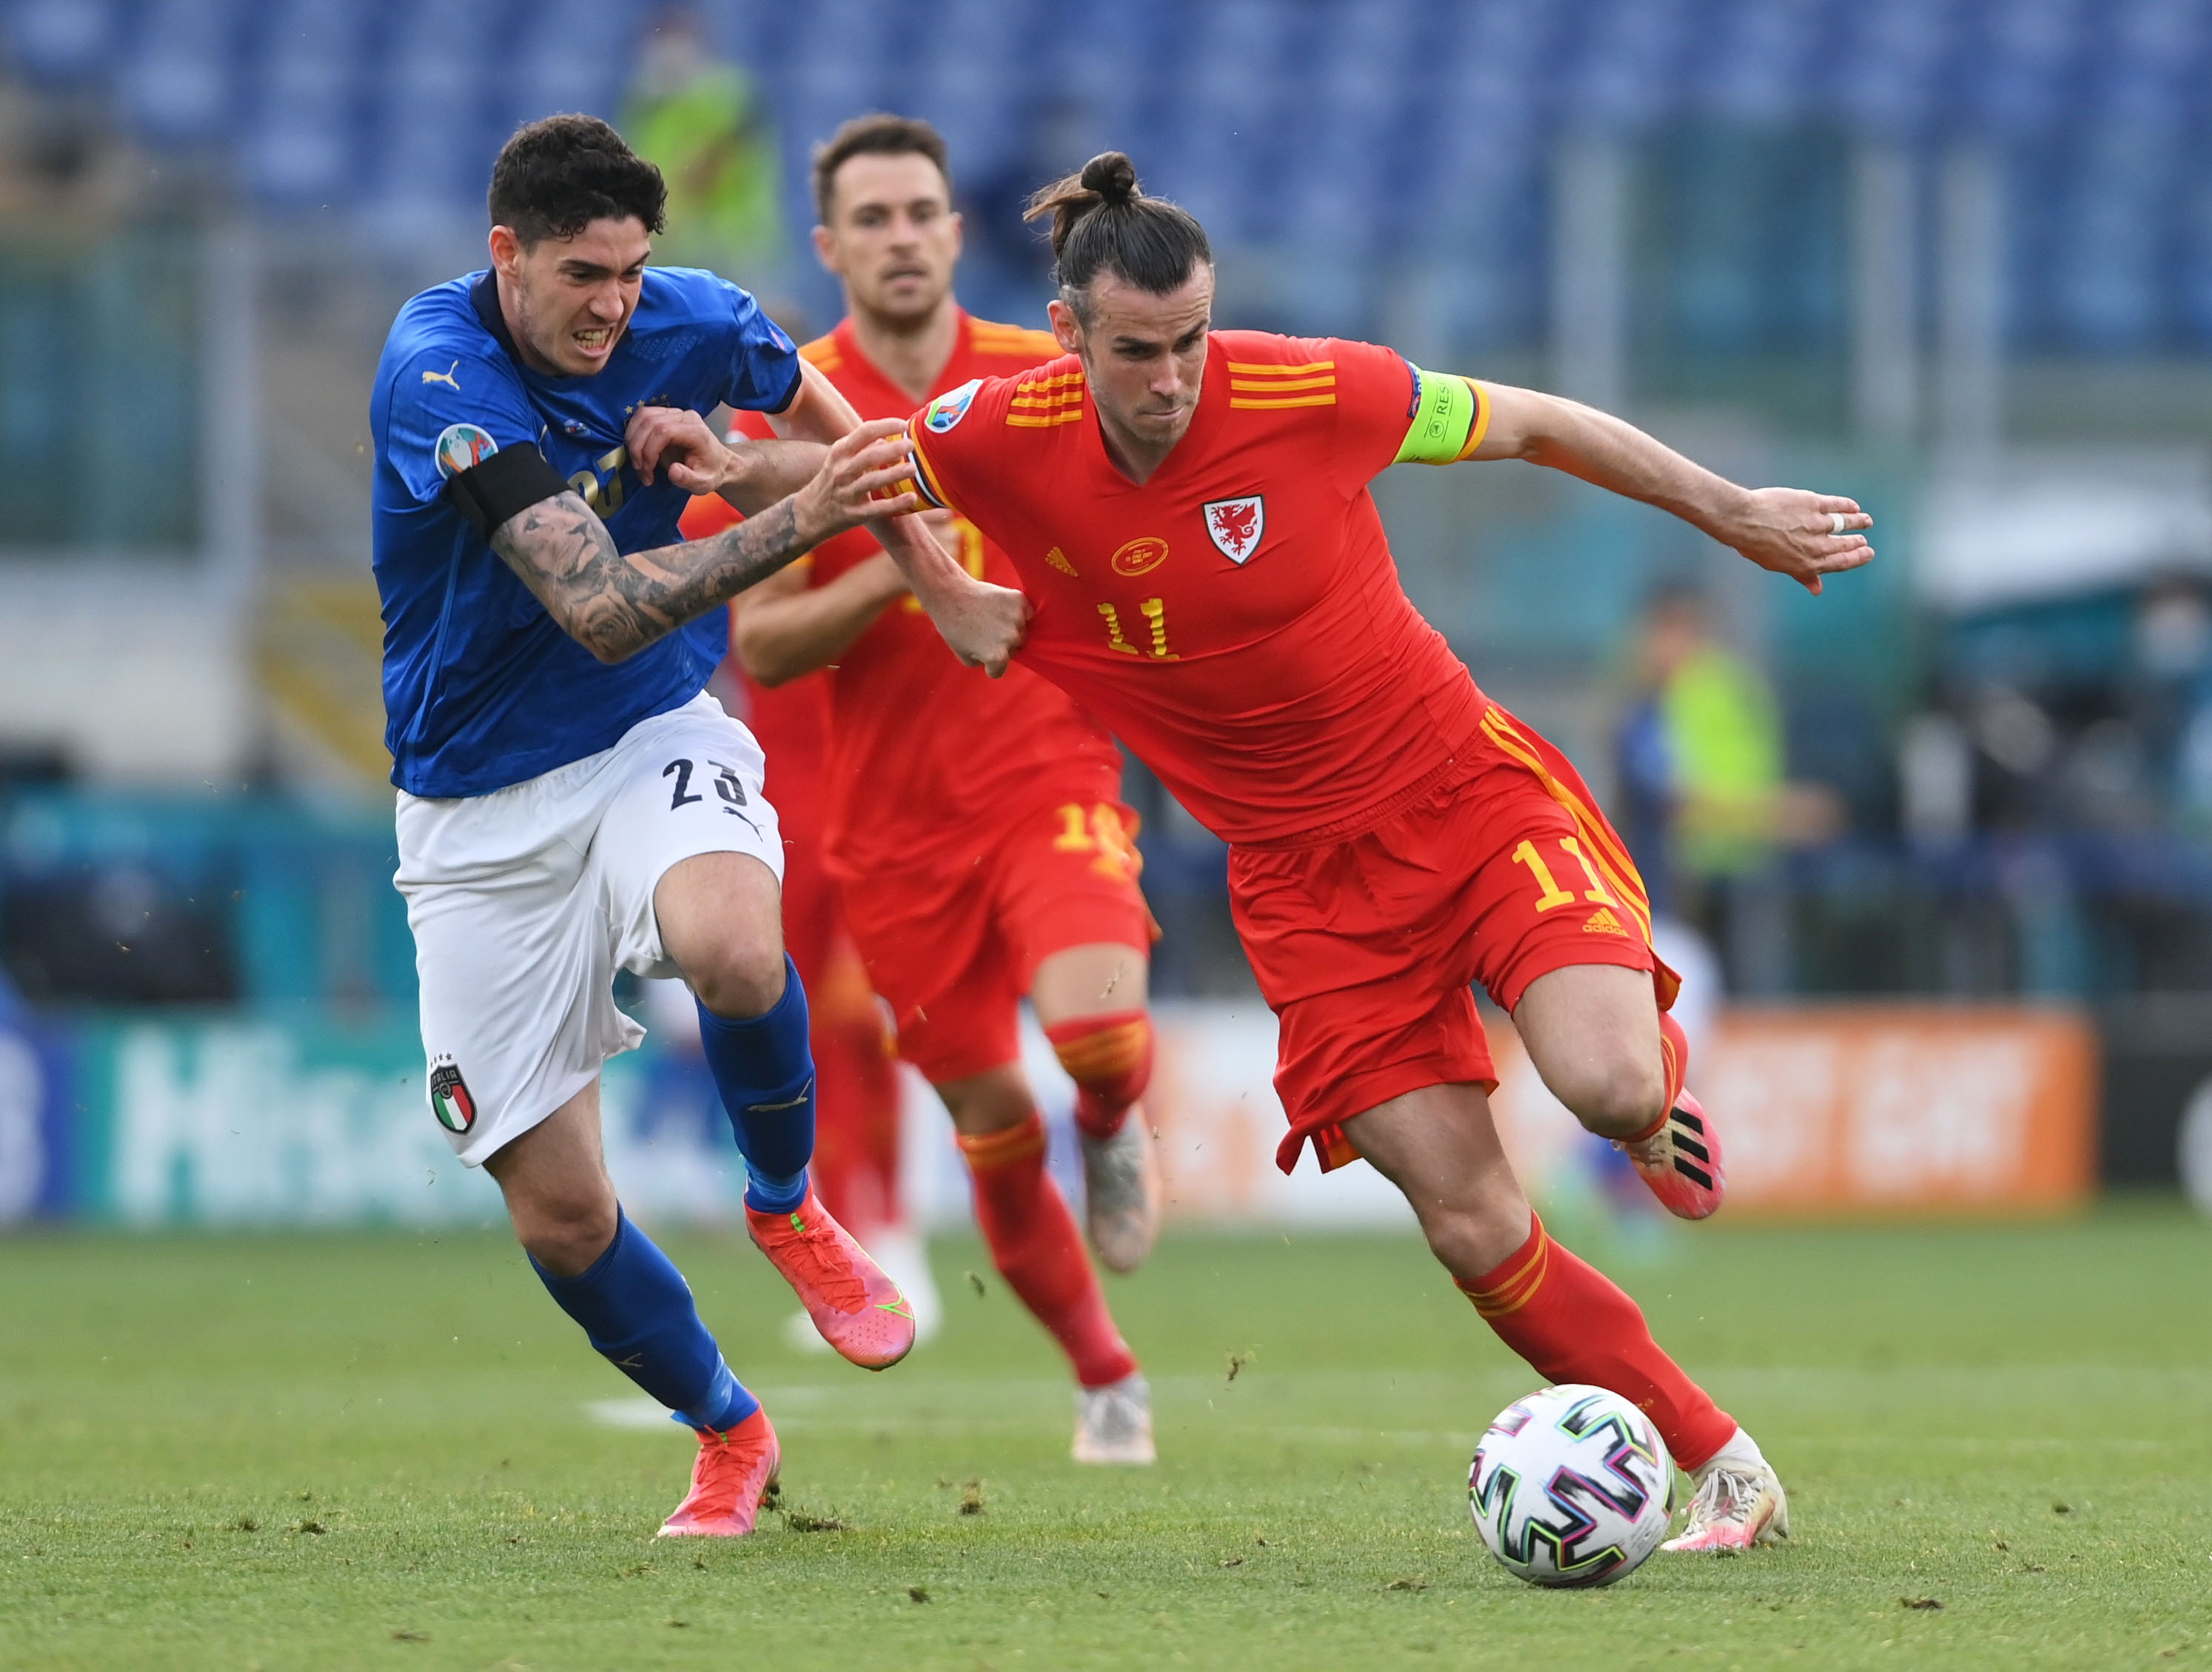 Soccer Football - Euro 2020 - Group A - Italy v Wales - Stadio Olimpico, Rome, Italy - June 20, 2021  Wales' Gareth Bale in action with Italy's Giovanni Di Lorenzo Pool via REUTERS/Mike Hewitt